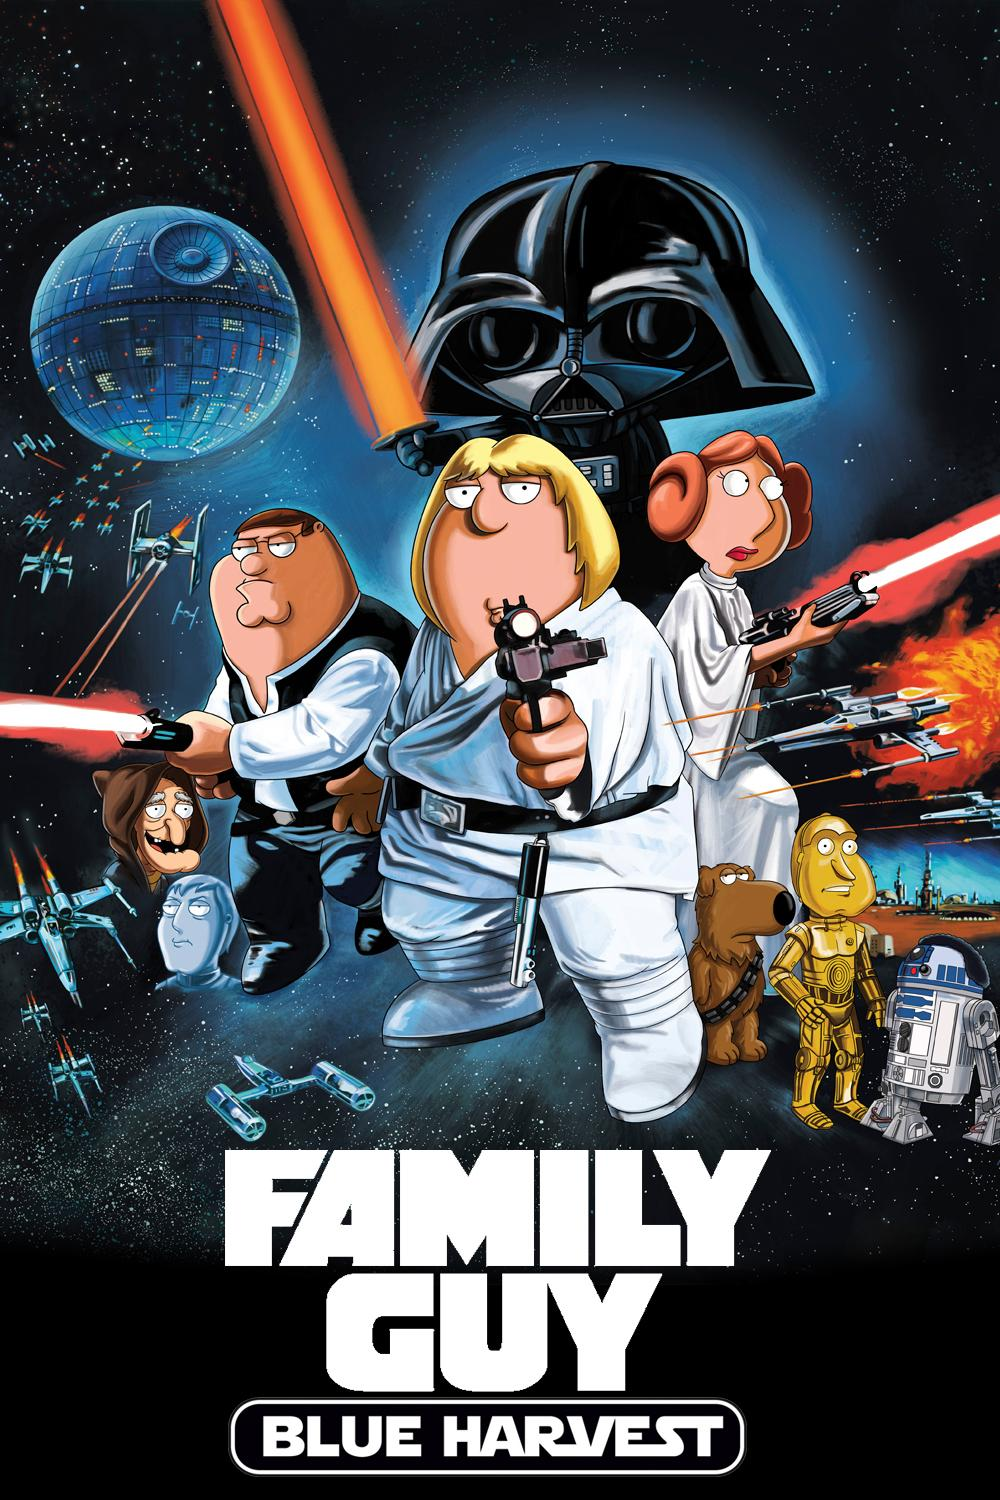 [MULTI] Family Guy: Blue Harvest [DVDRiP] [FRENCH]